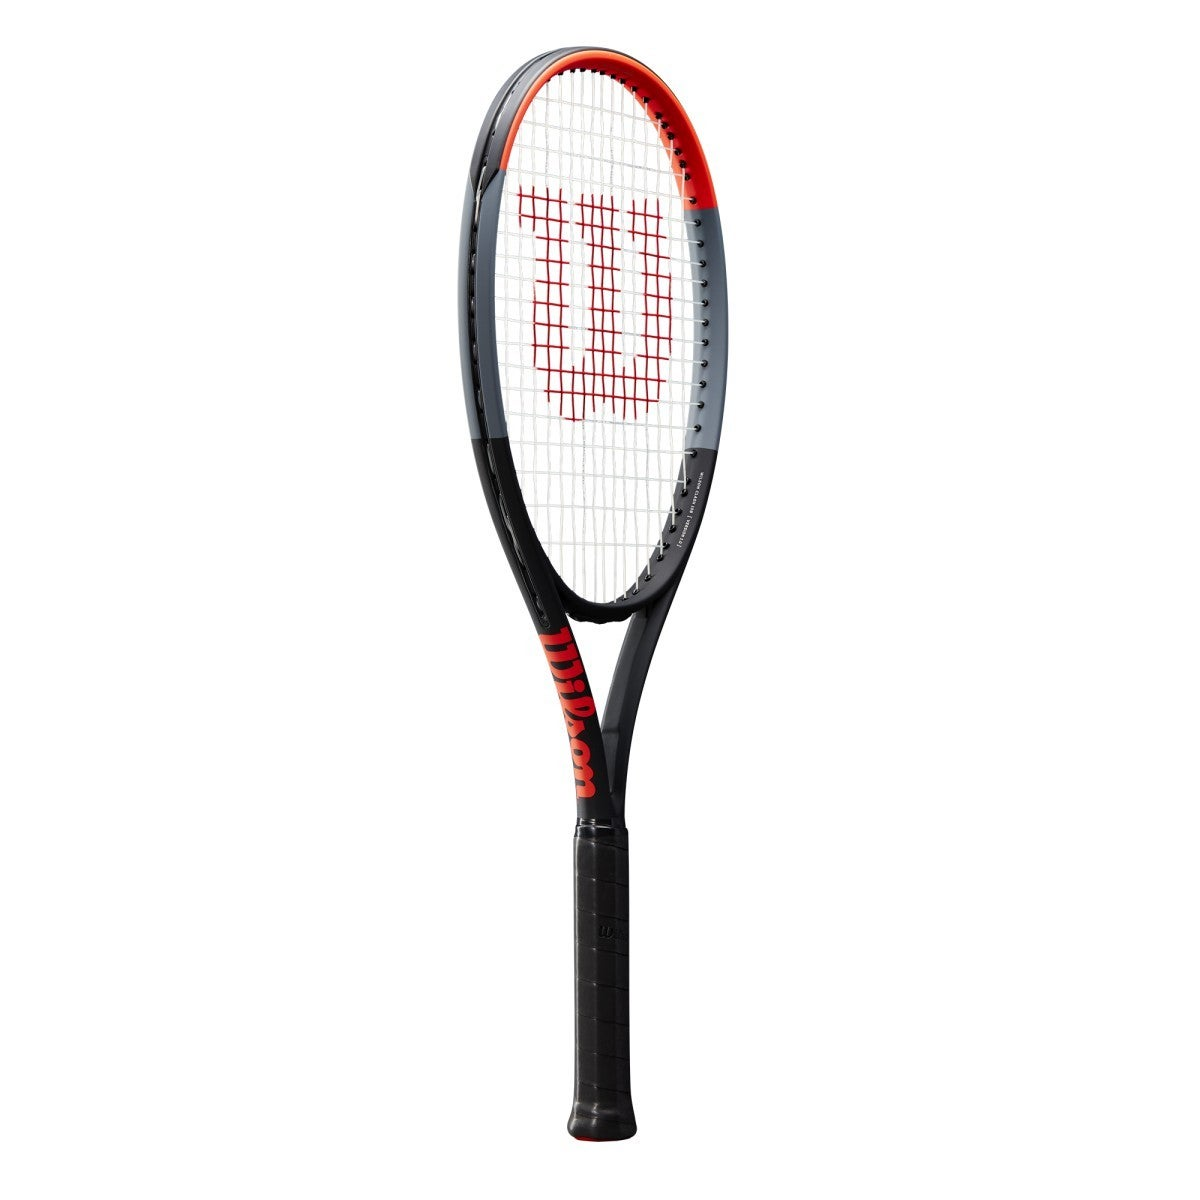 Clash 108 Tennis Racket Wilson Sporting Goods